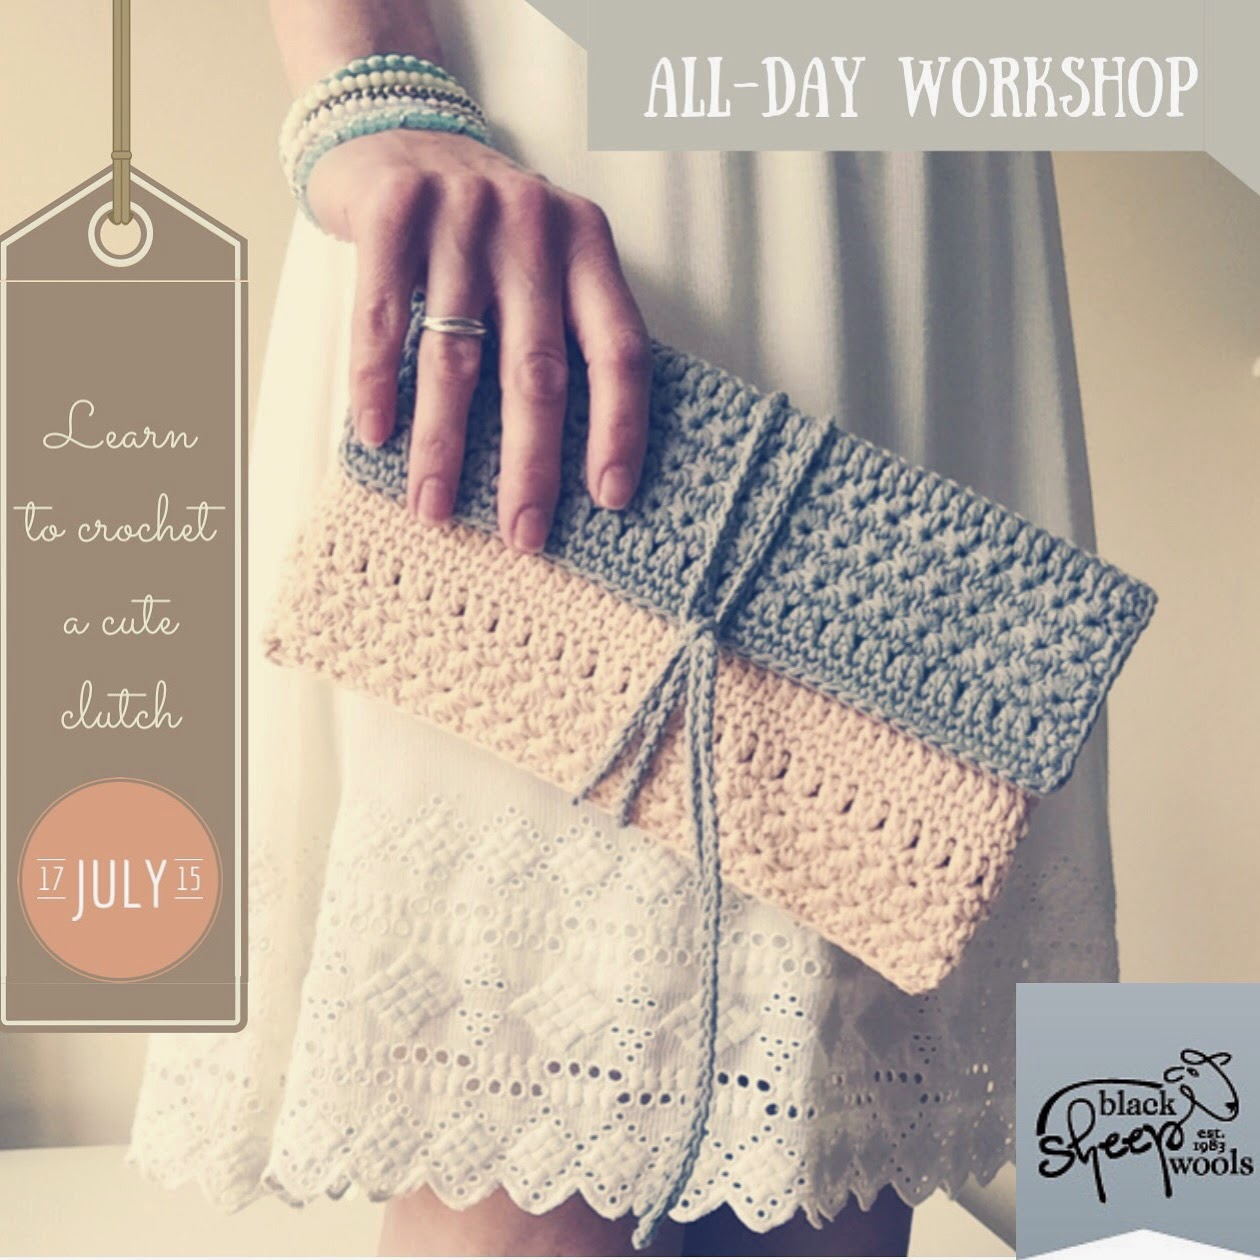 Workshop July 17 2015